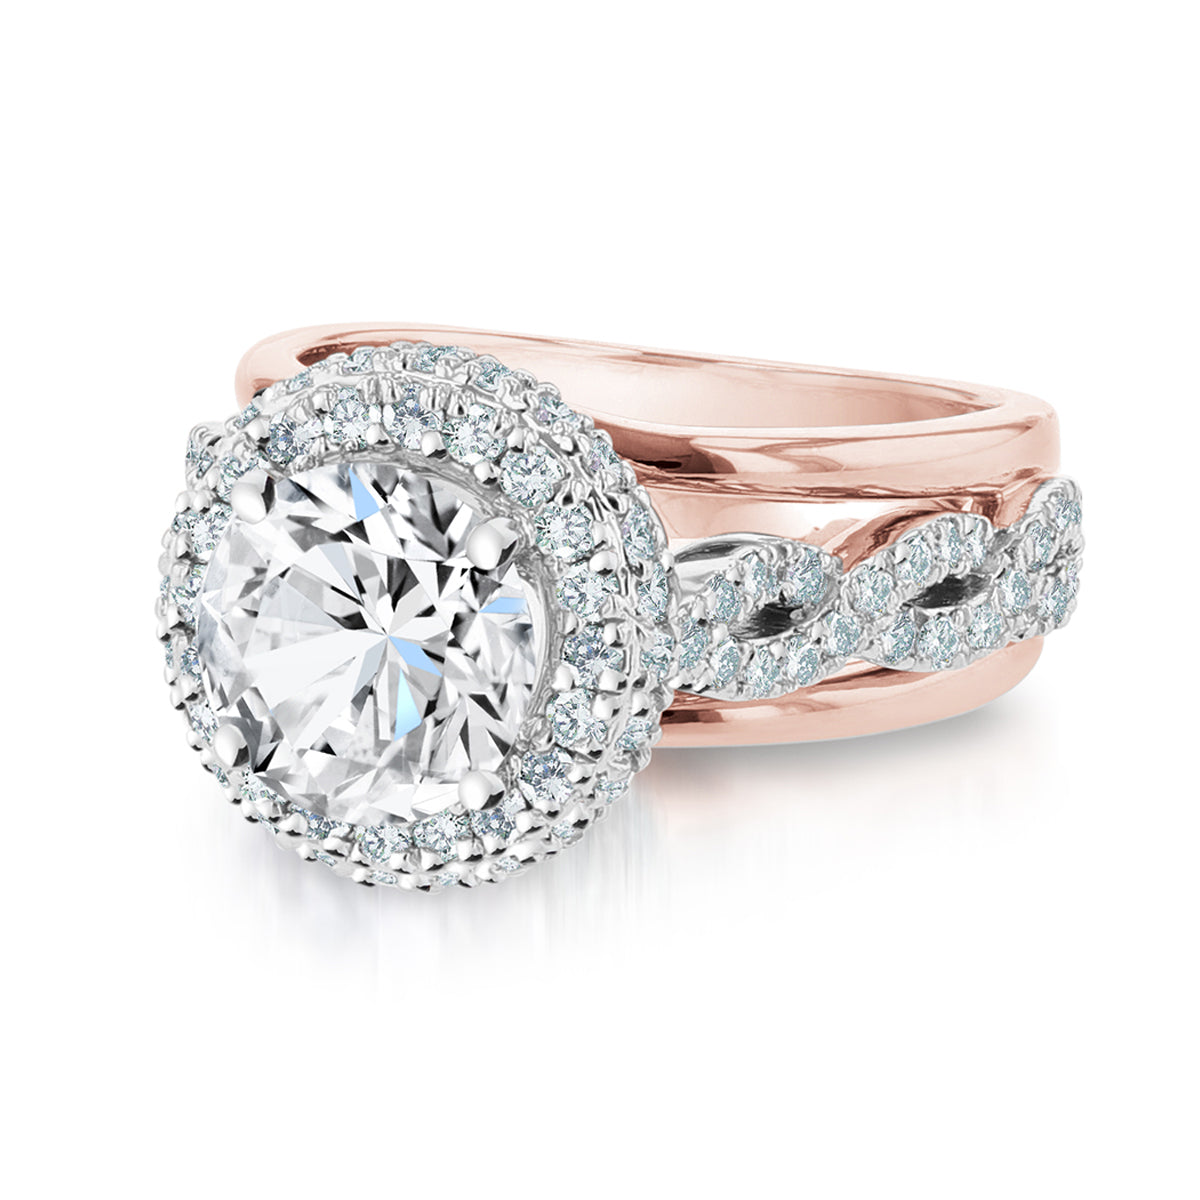 14K White and Rose Gold Round Diamond Engagement Ring - Nazarelle